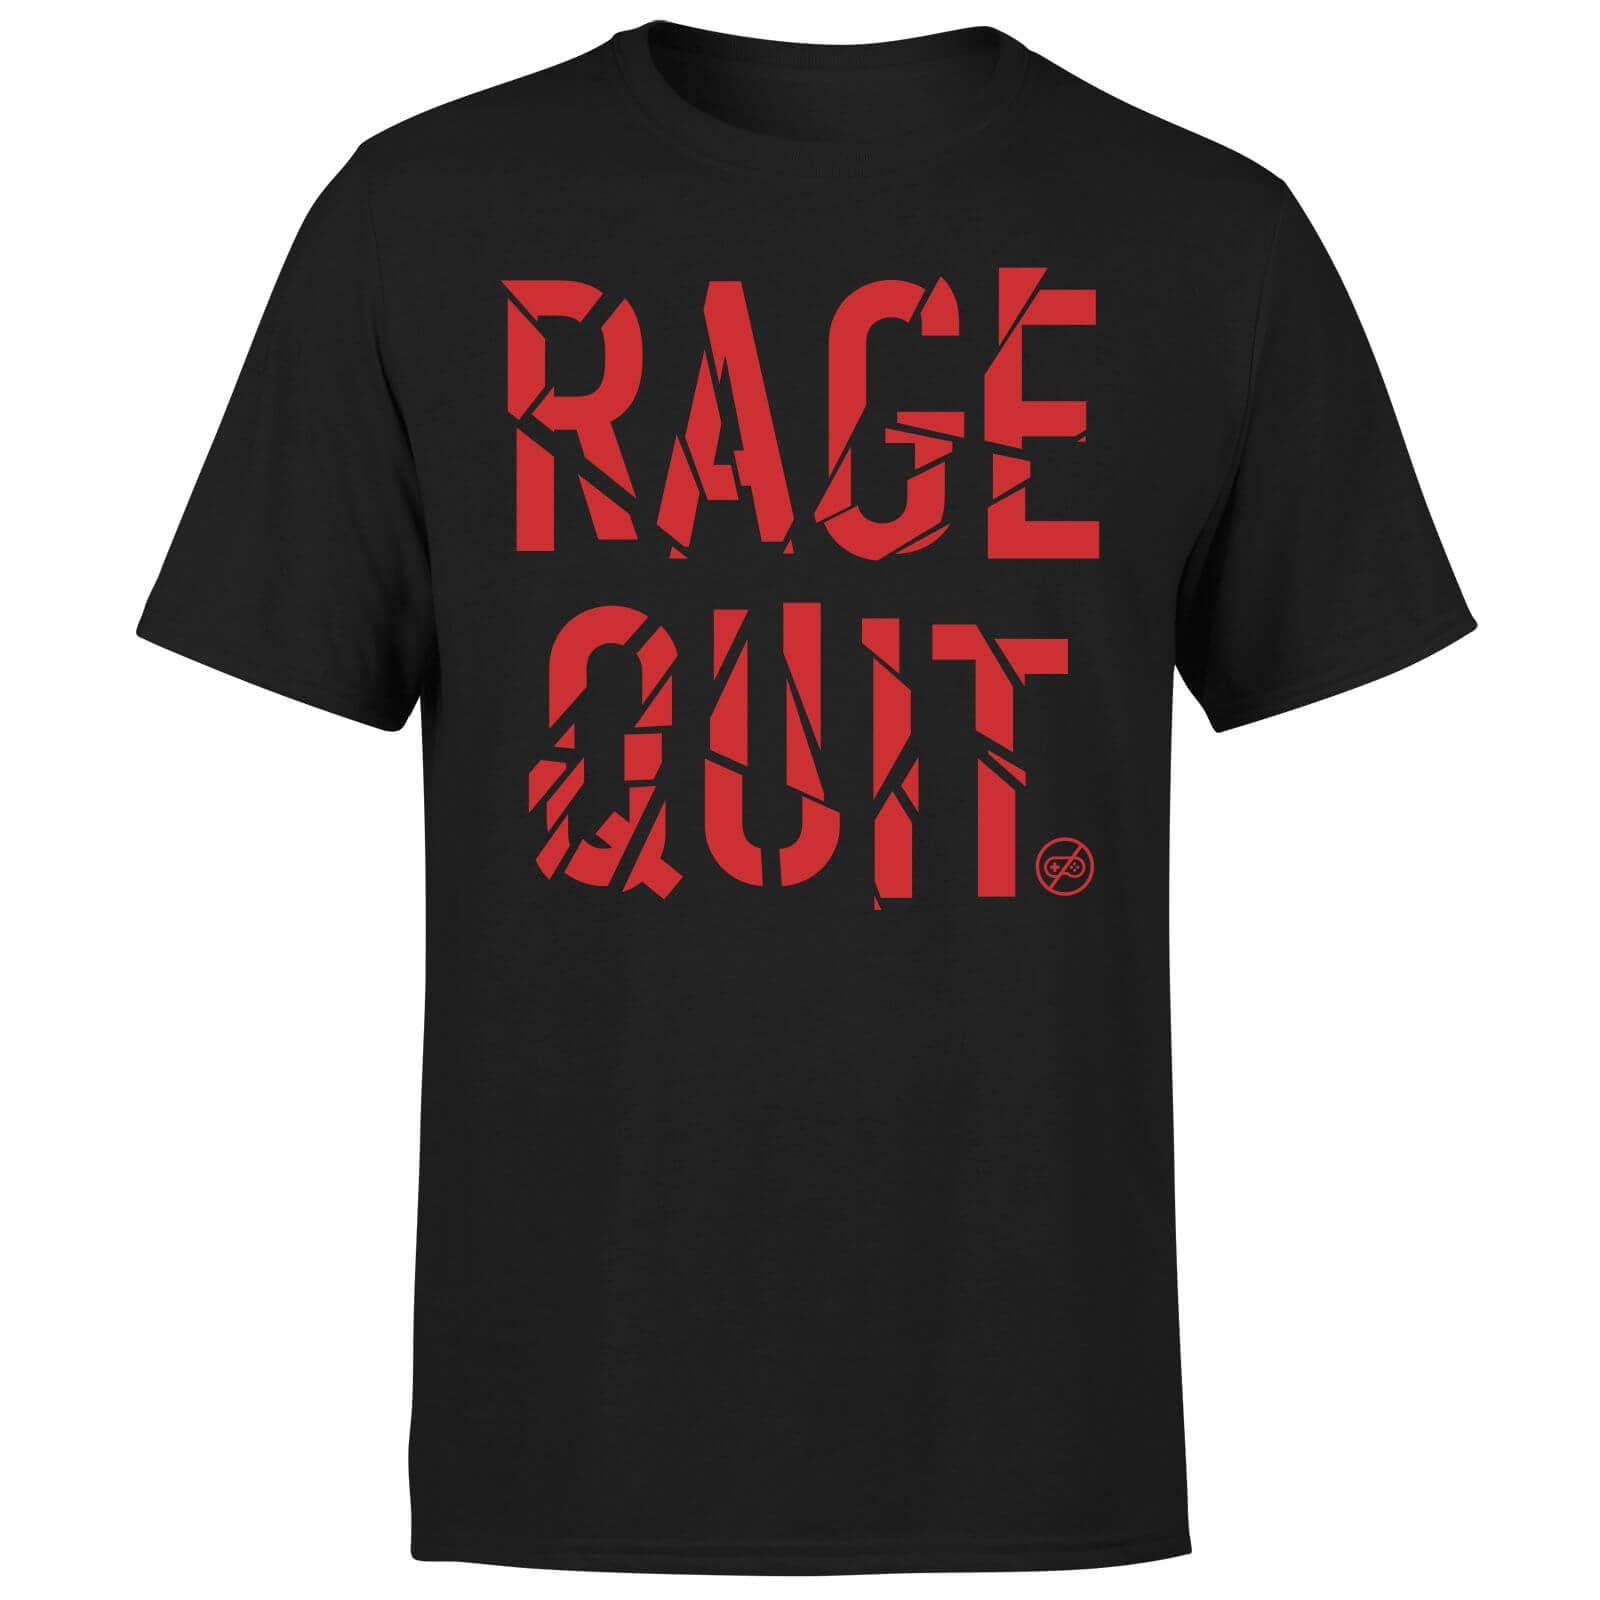 Rage Quit T-Shirt - Black